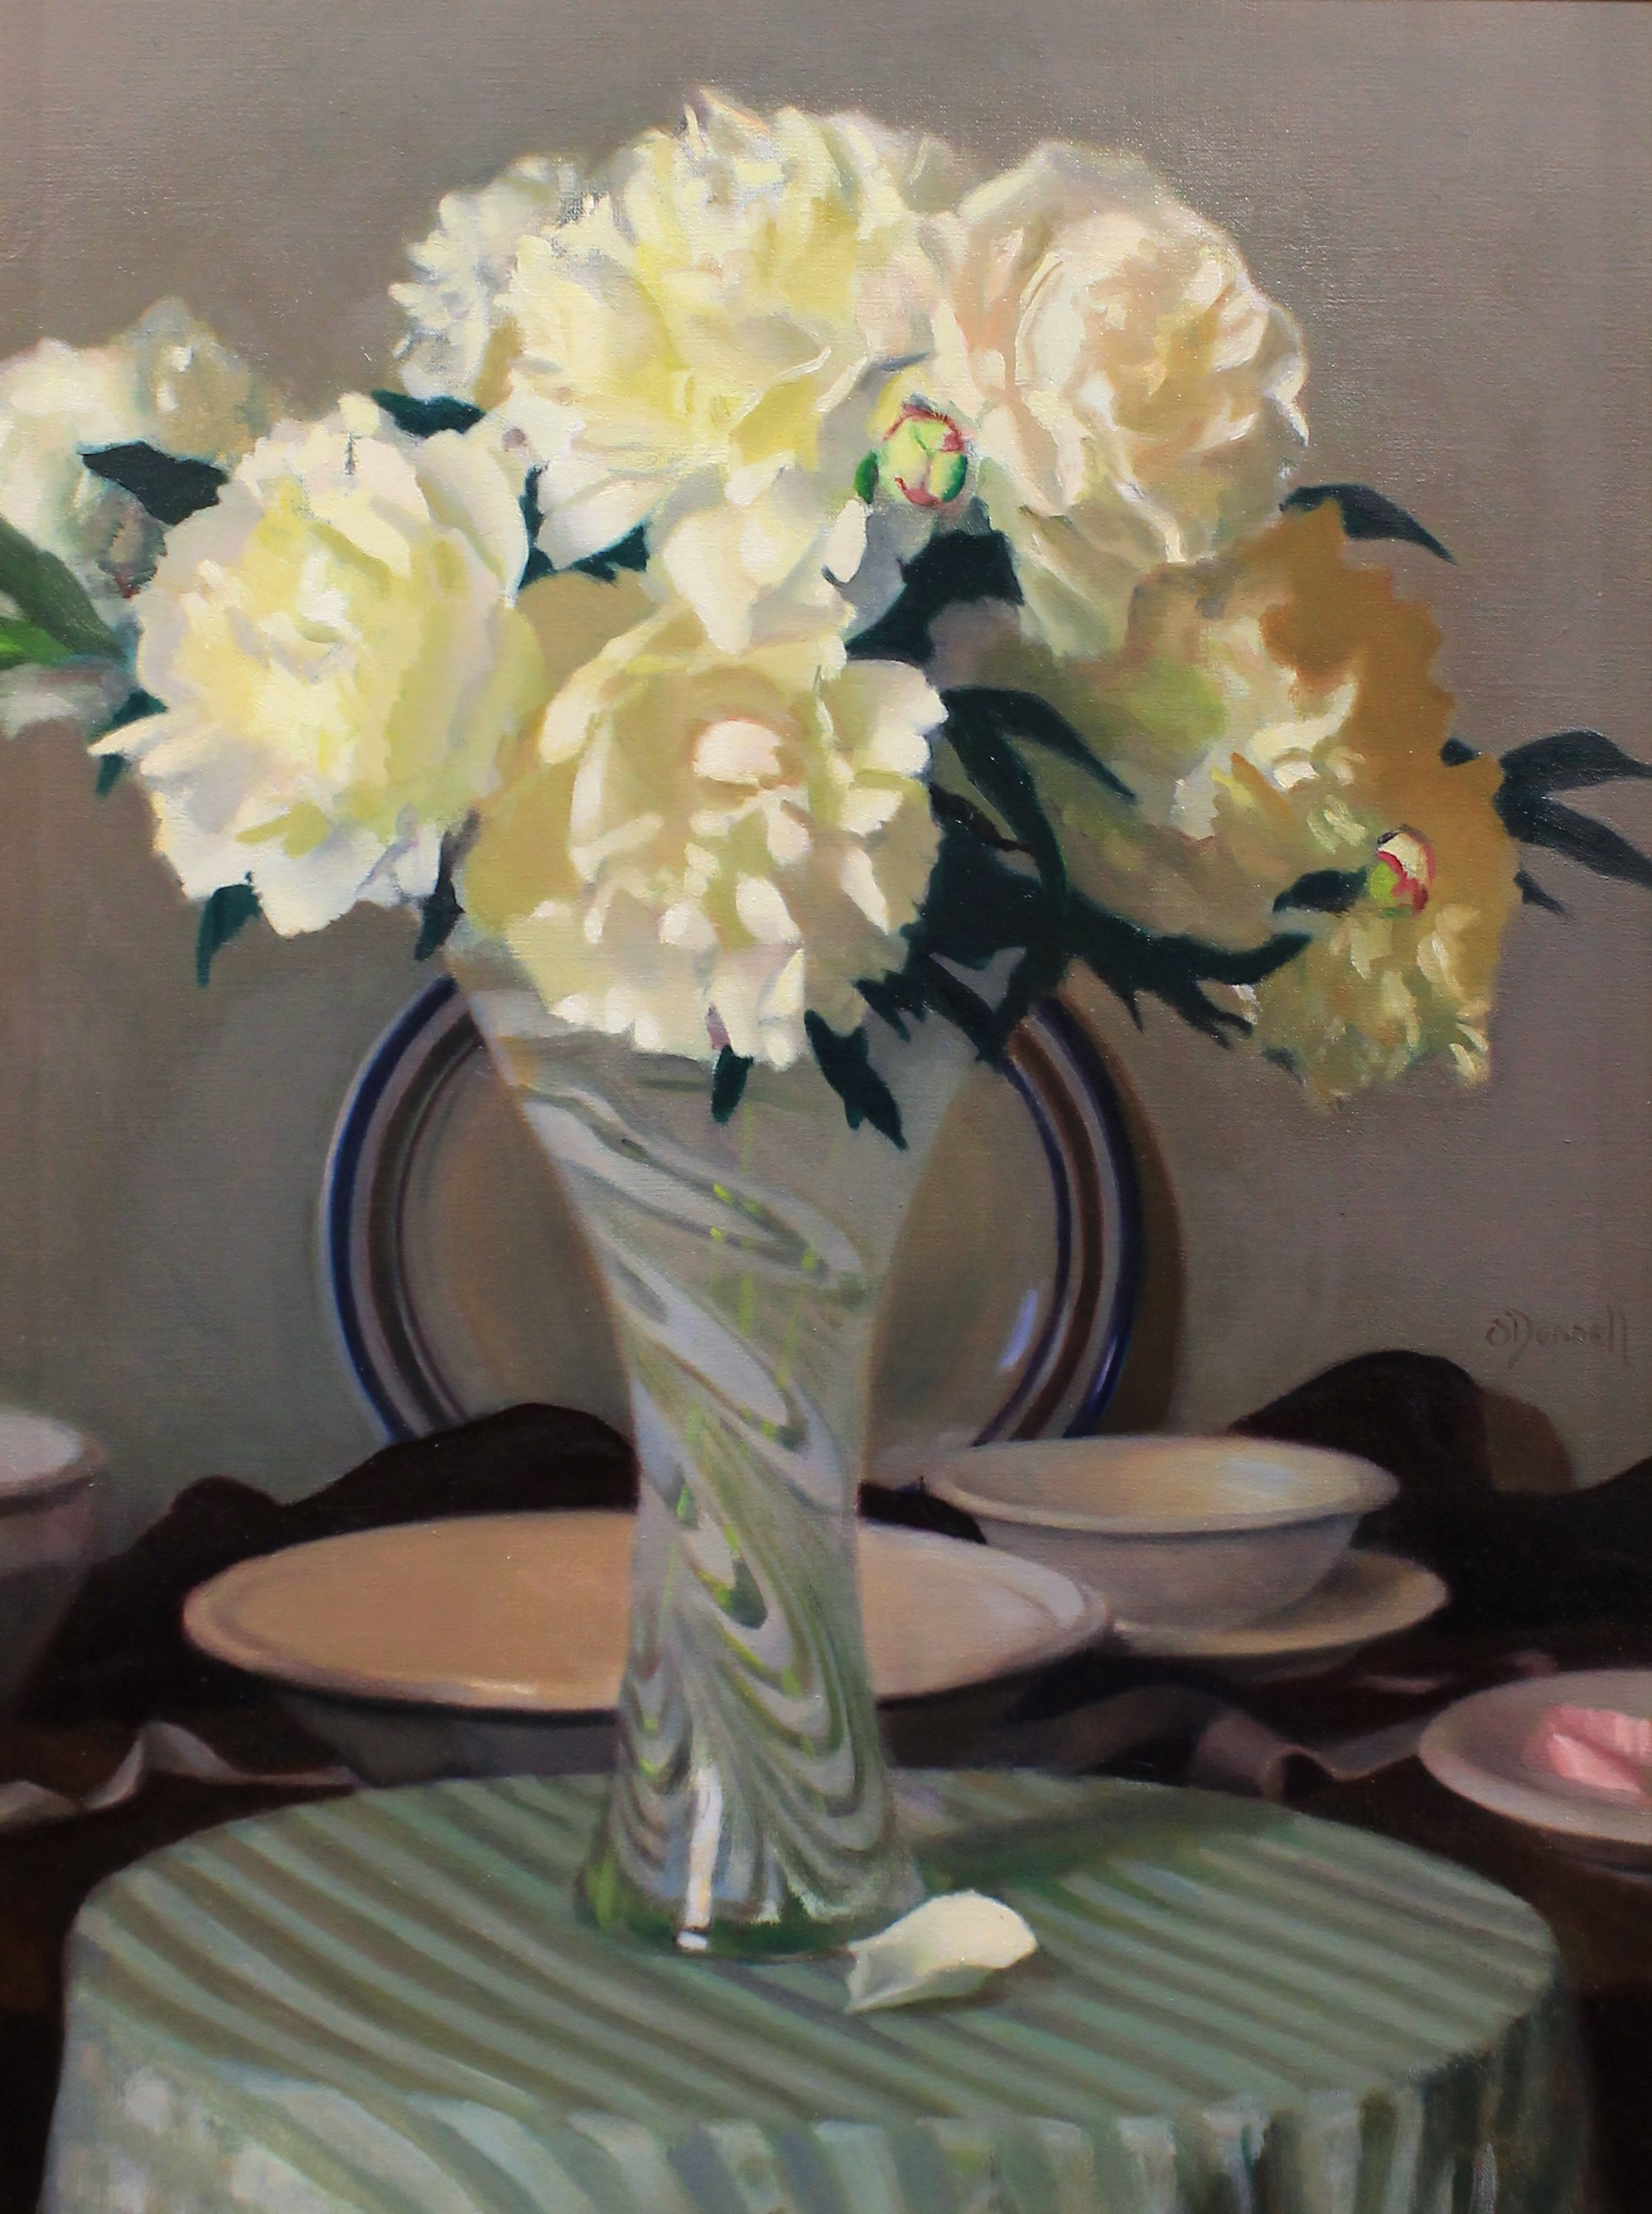 ODonnell_Peonies-in-an-Art-Glass-Vase